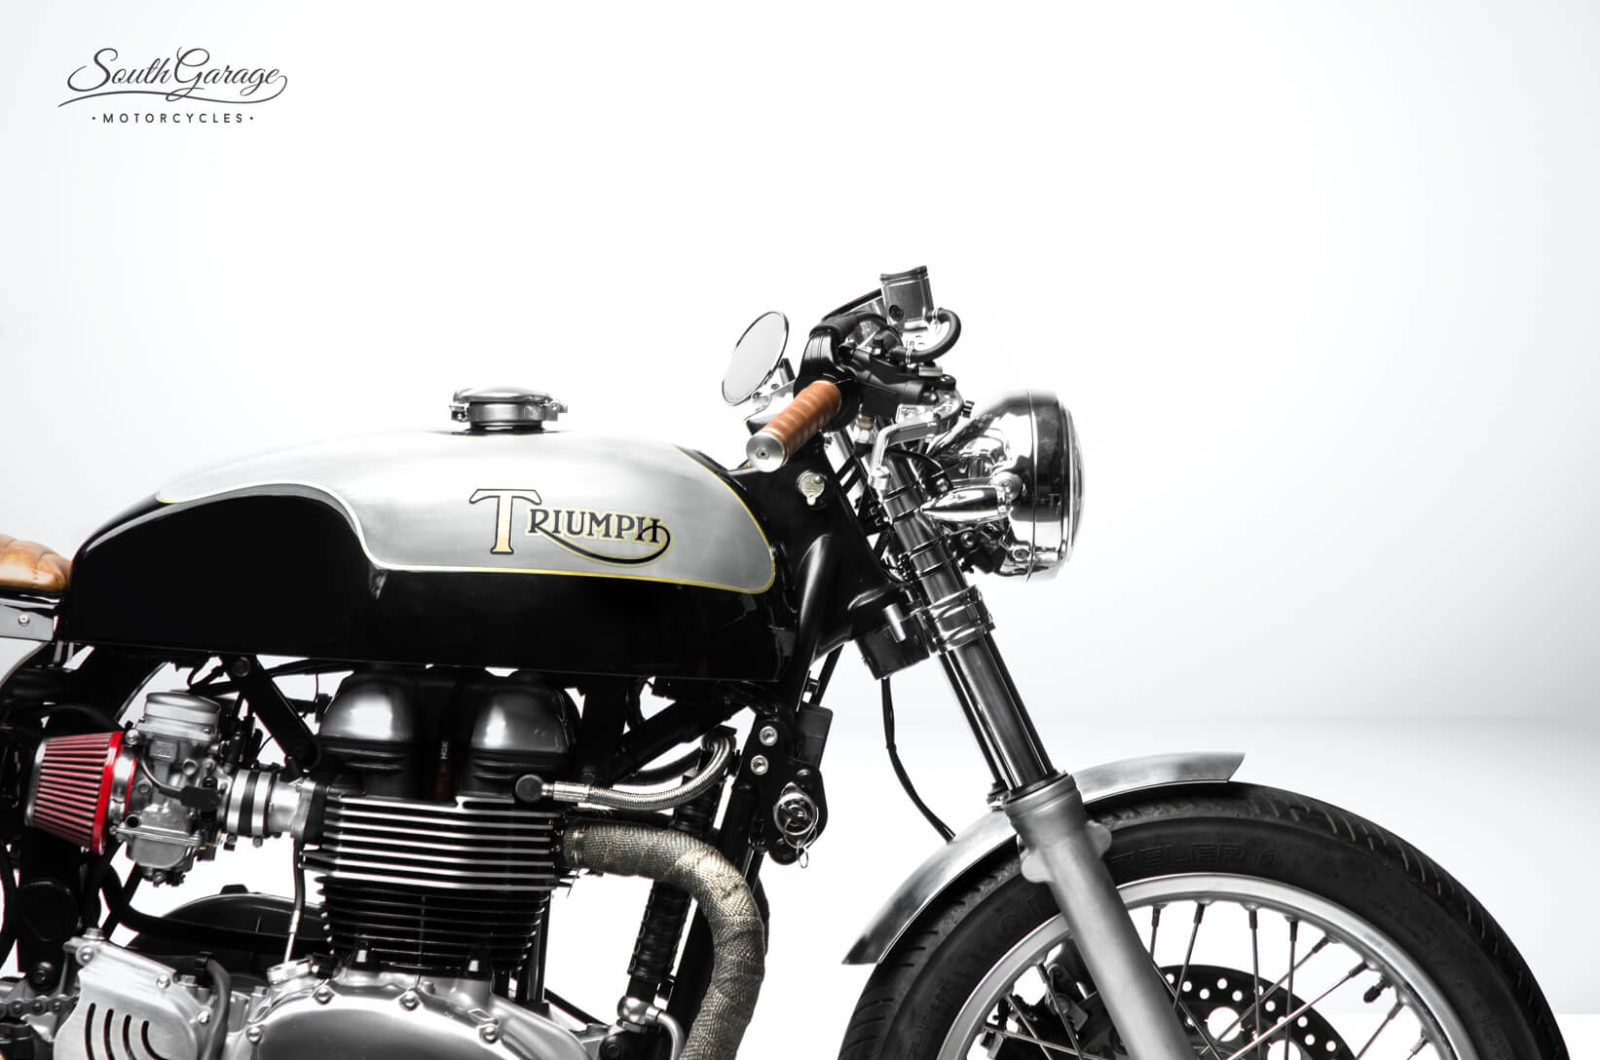 Triumph Truxton Café Racer by South Garage 3